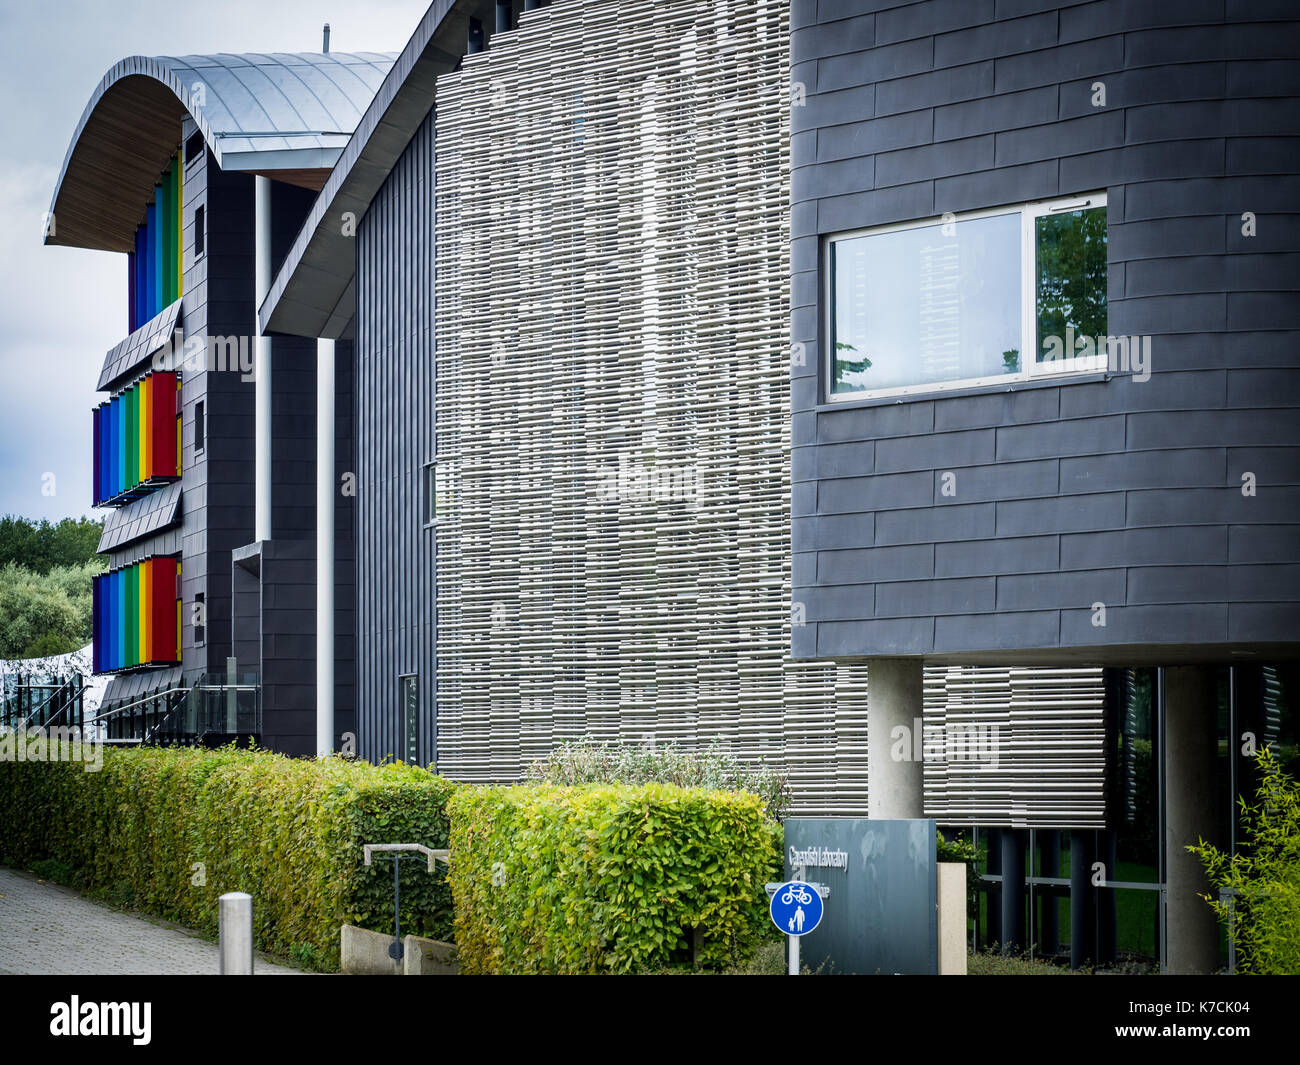 Physics of Medicine Building - University of Cambridge Cavendish Laboratory on the West Cambridge Site. Maxwell centre in the background. - Stock Image